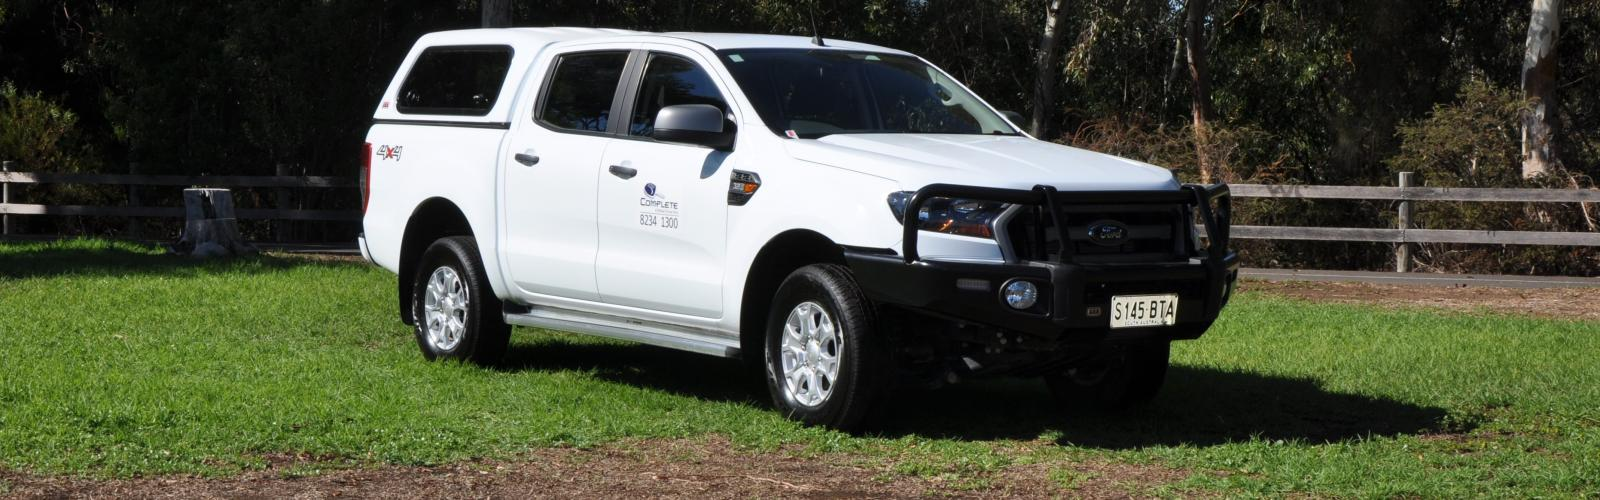 4WD Ford Ranger Dual Cab Canopy 4WD Hire2